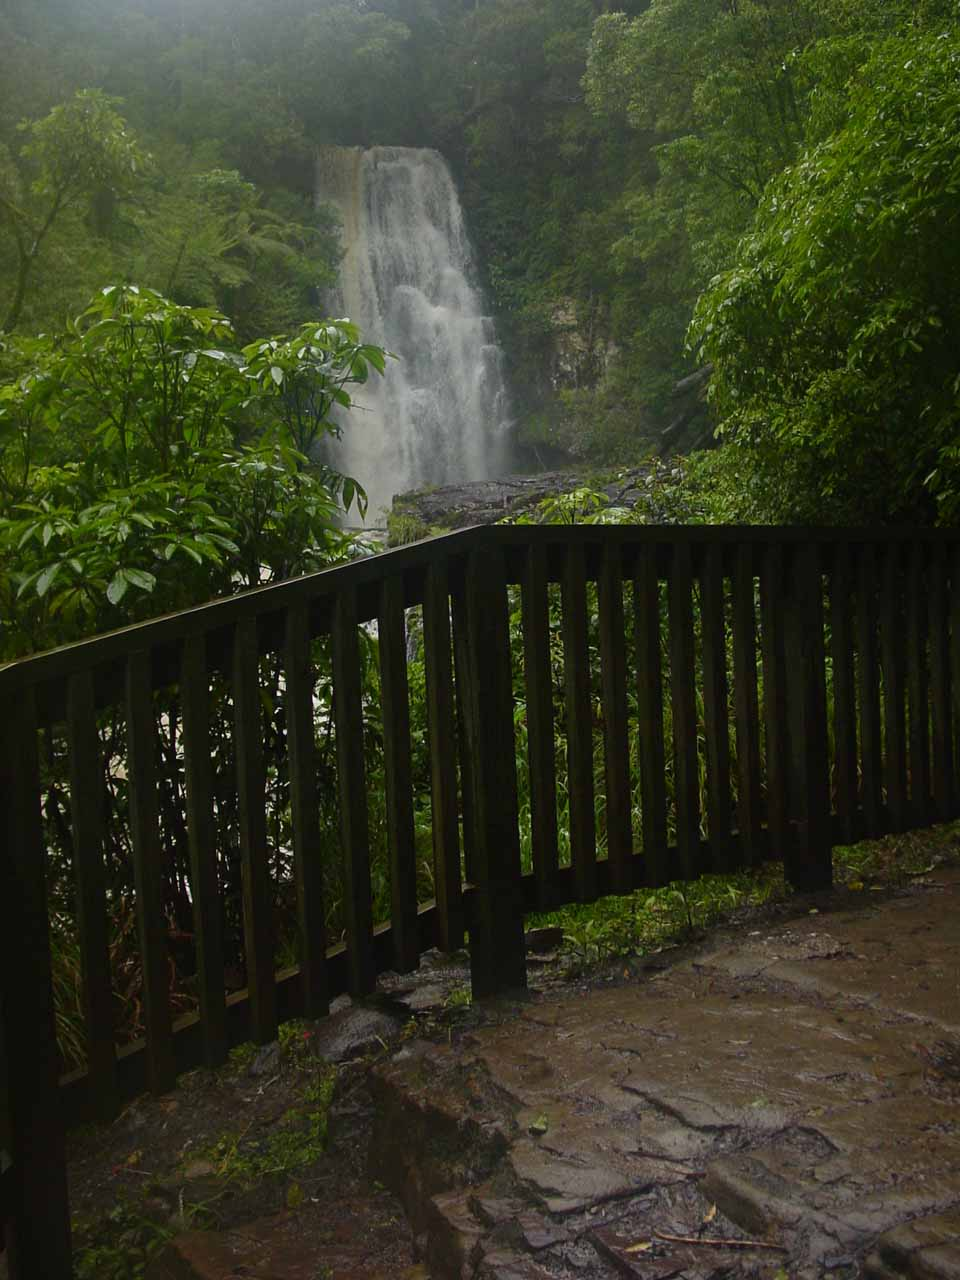 The wooden railings at the lookout for McLean Falls